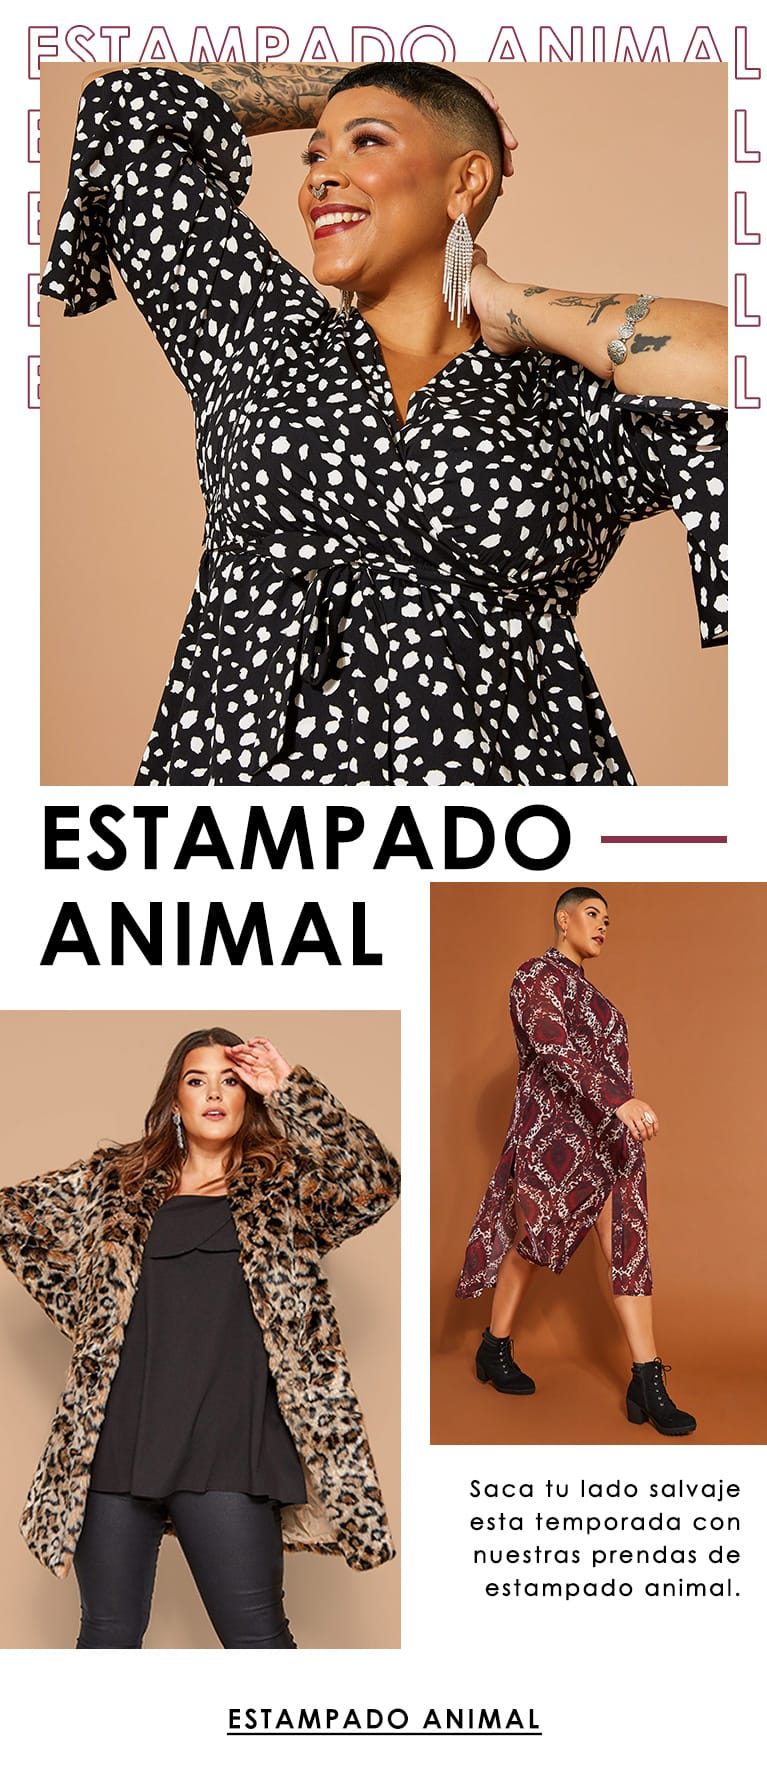 estampado animal >